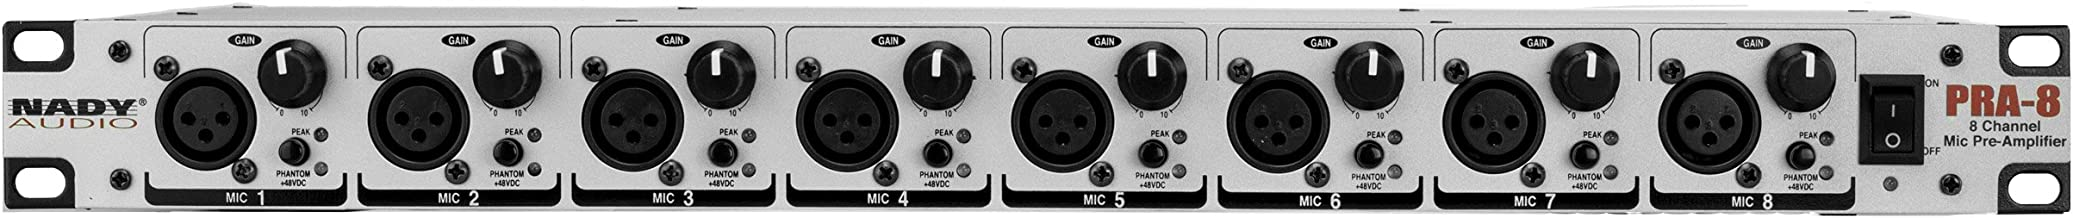 """Nady PRA-8 Microphone Preamplifier - Eight independent preamplifiers, fits in single rack space, eight XLR inputs & eight 1/4"""" outputs"""